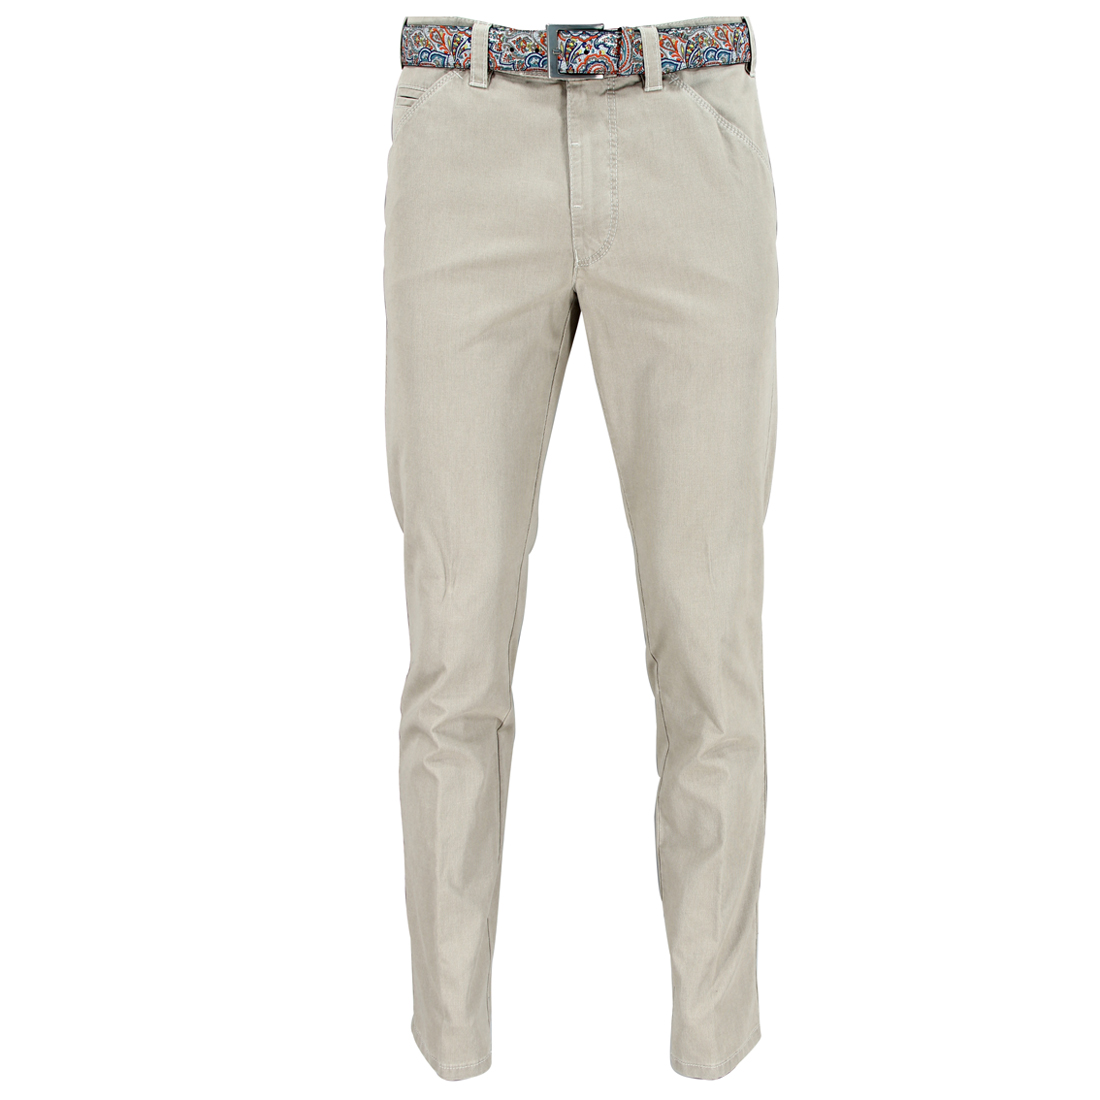 Image of Meyer Hosen broek Chicago 3321311800 in het Beige